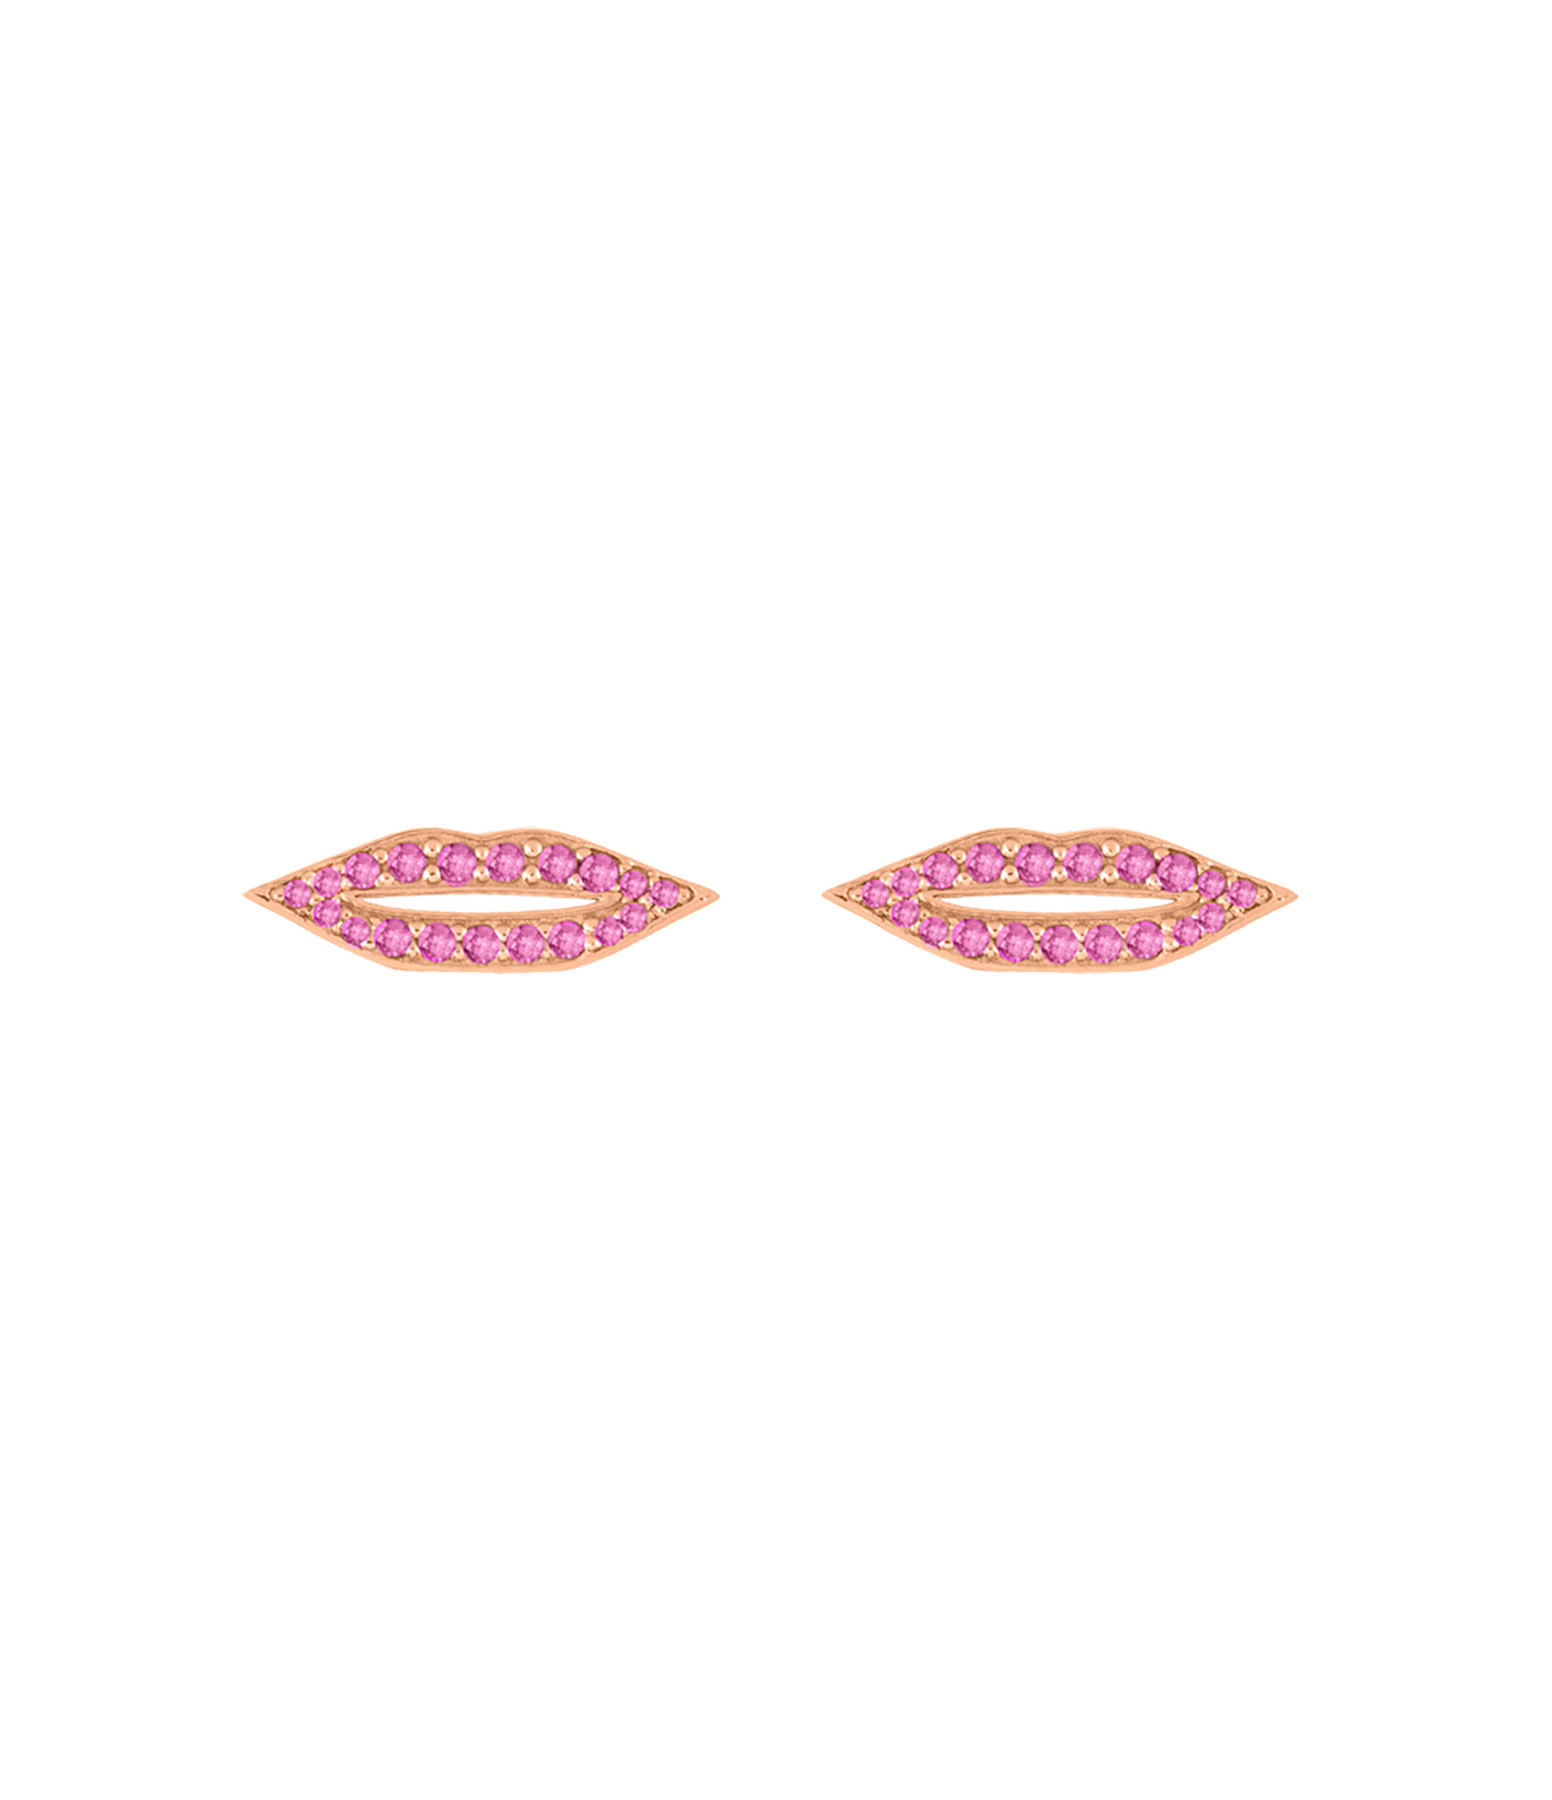 GINETTE NY - Boucle d'oreille French Kiss Saphirs Roses Or Rose